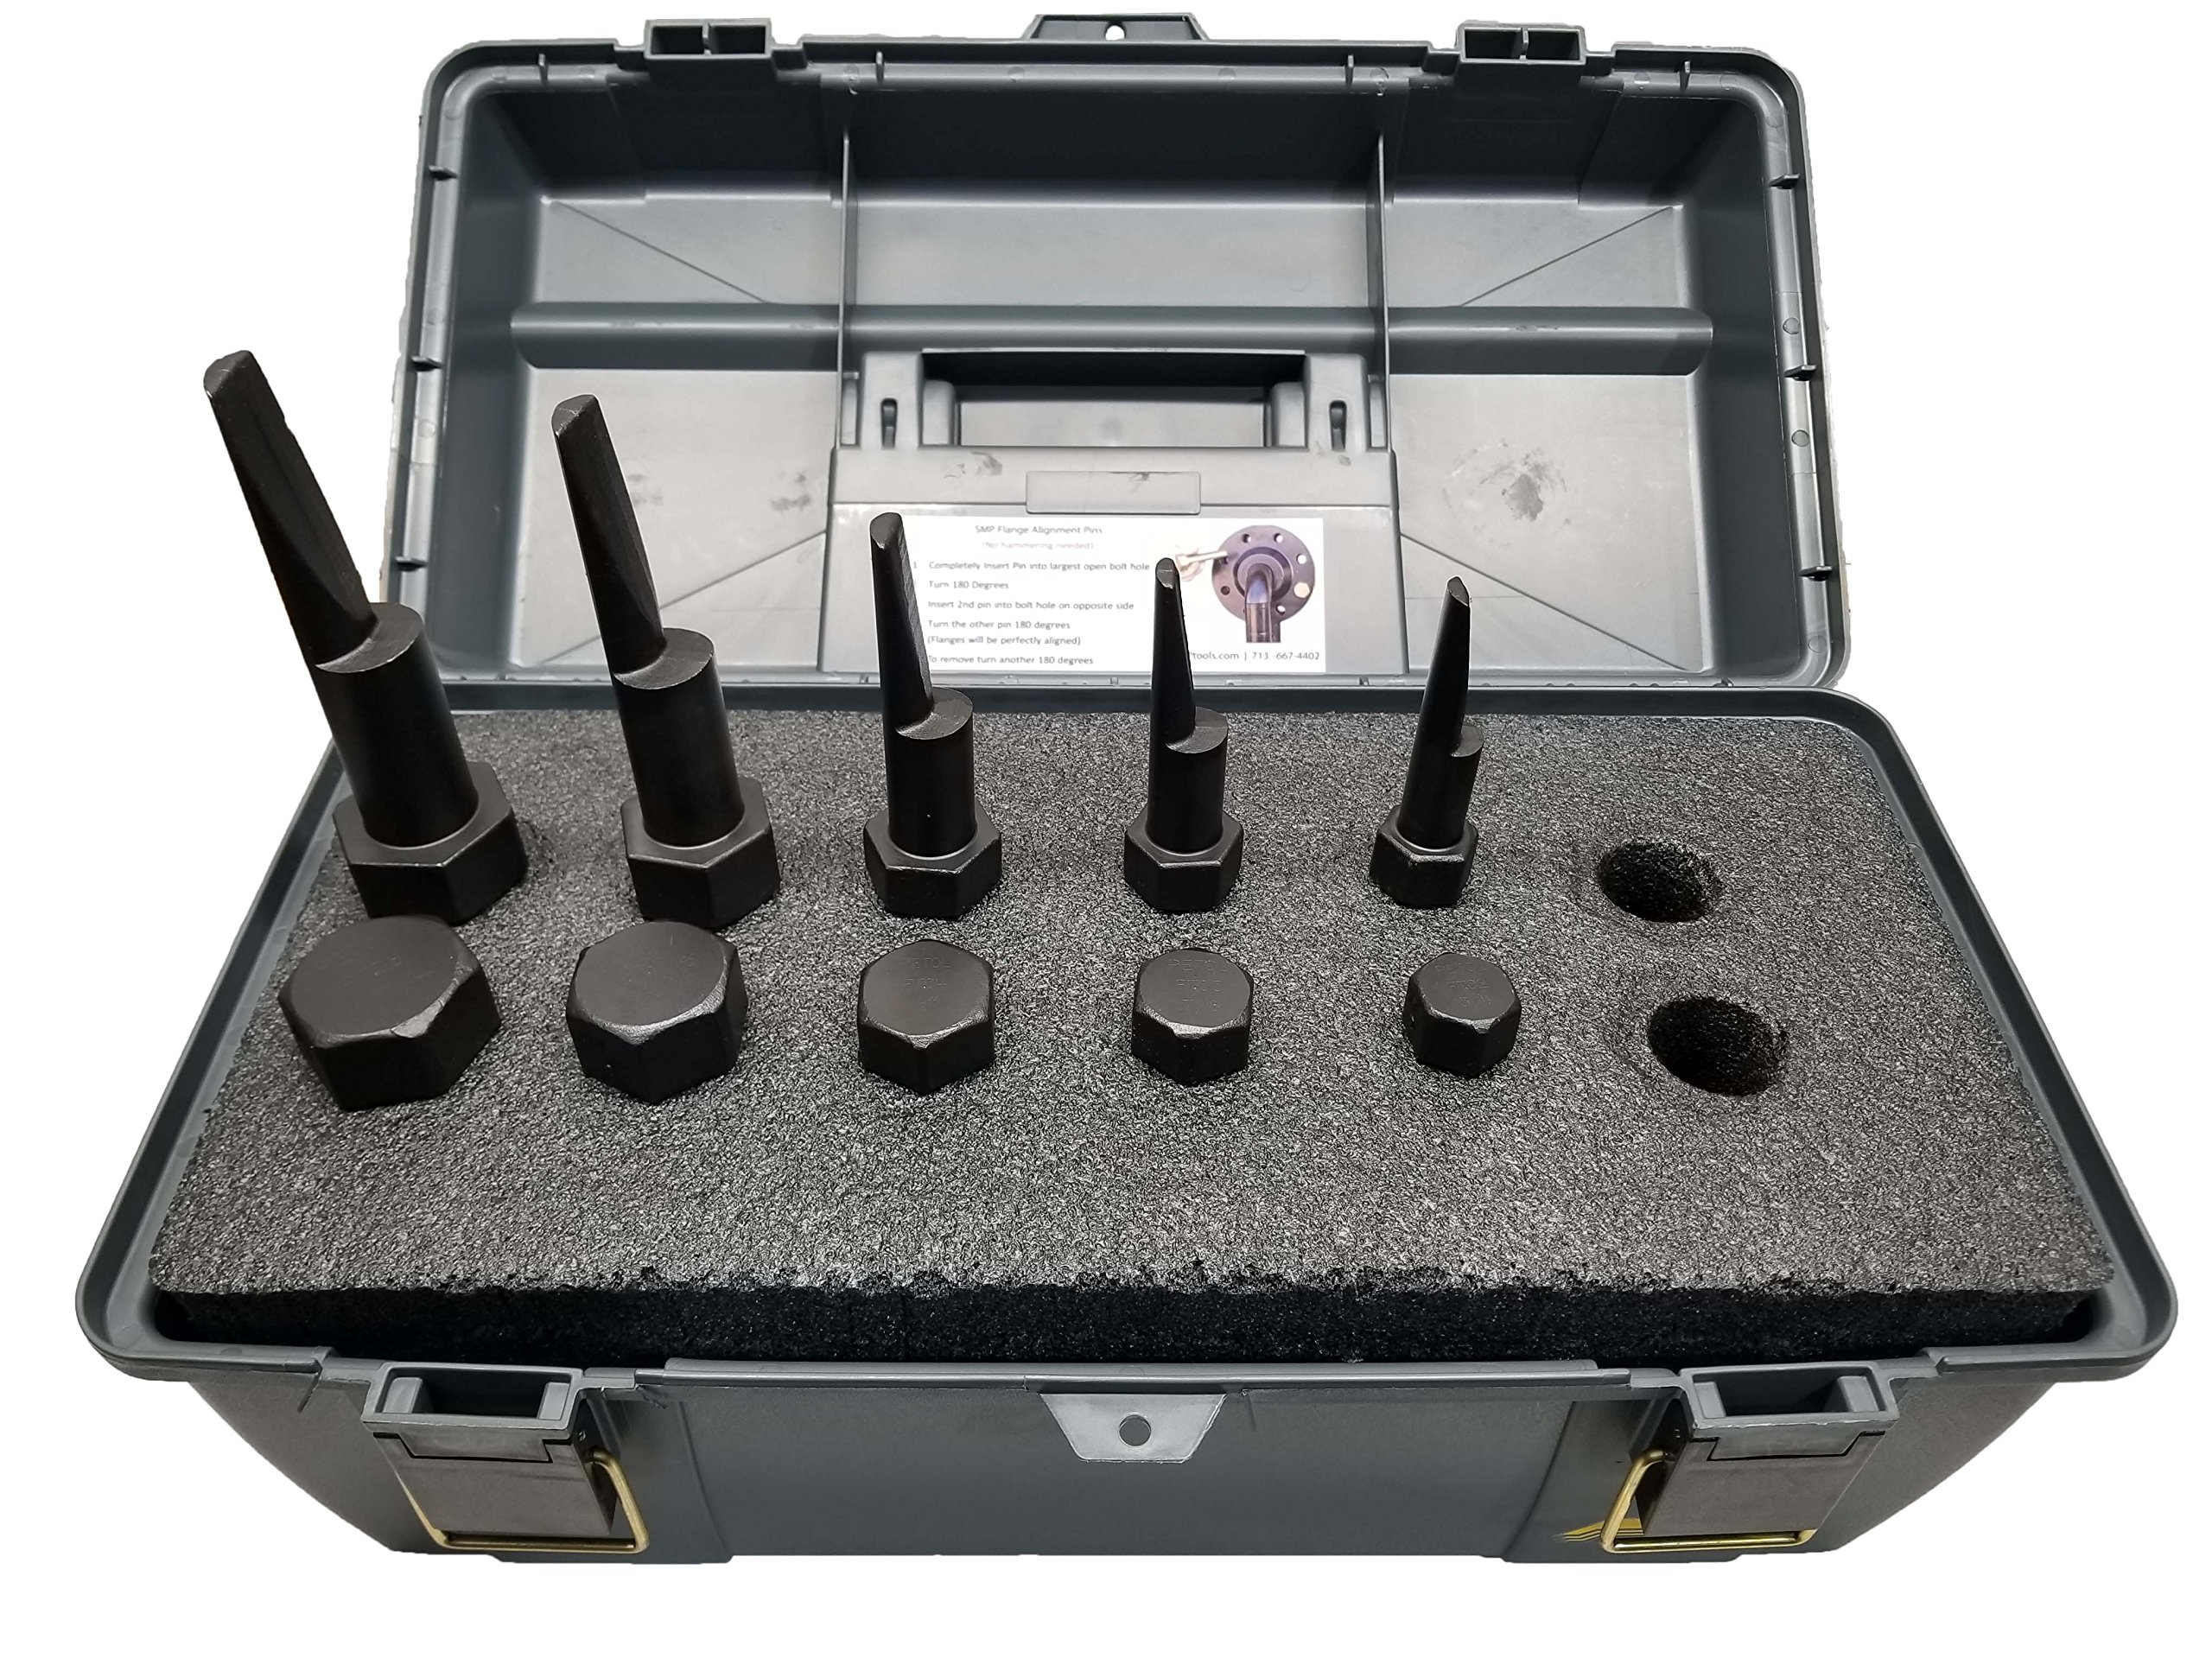 Titan Flange Alignment Pin Set with Case, Contains 2 Units of pin Sizes 3/4'', 7/8'', 1'', 1-1/8'', 1-1/4'' by Titan (Image #1)